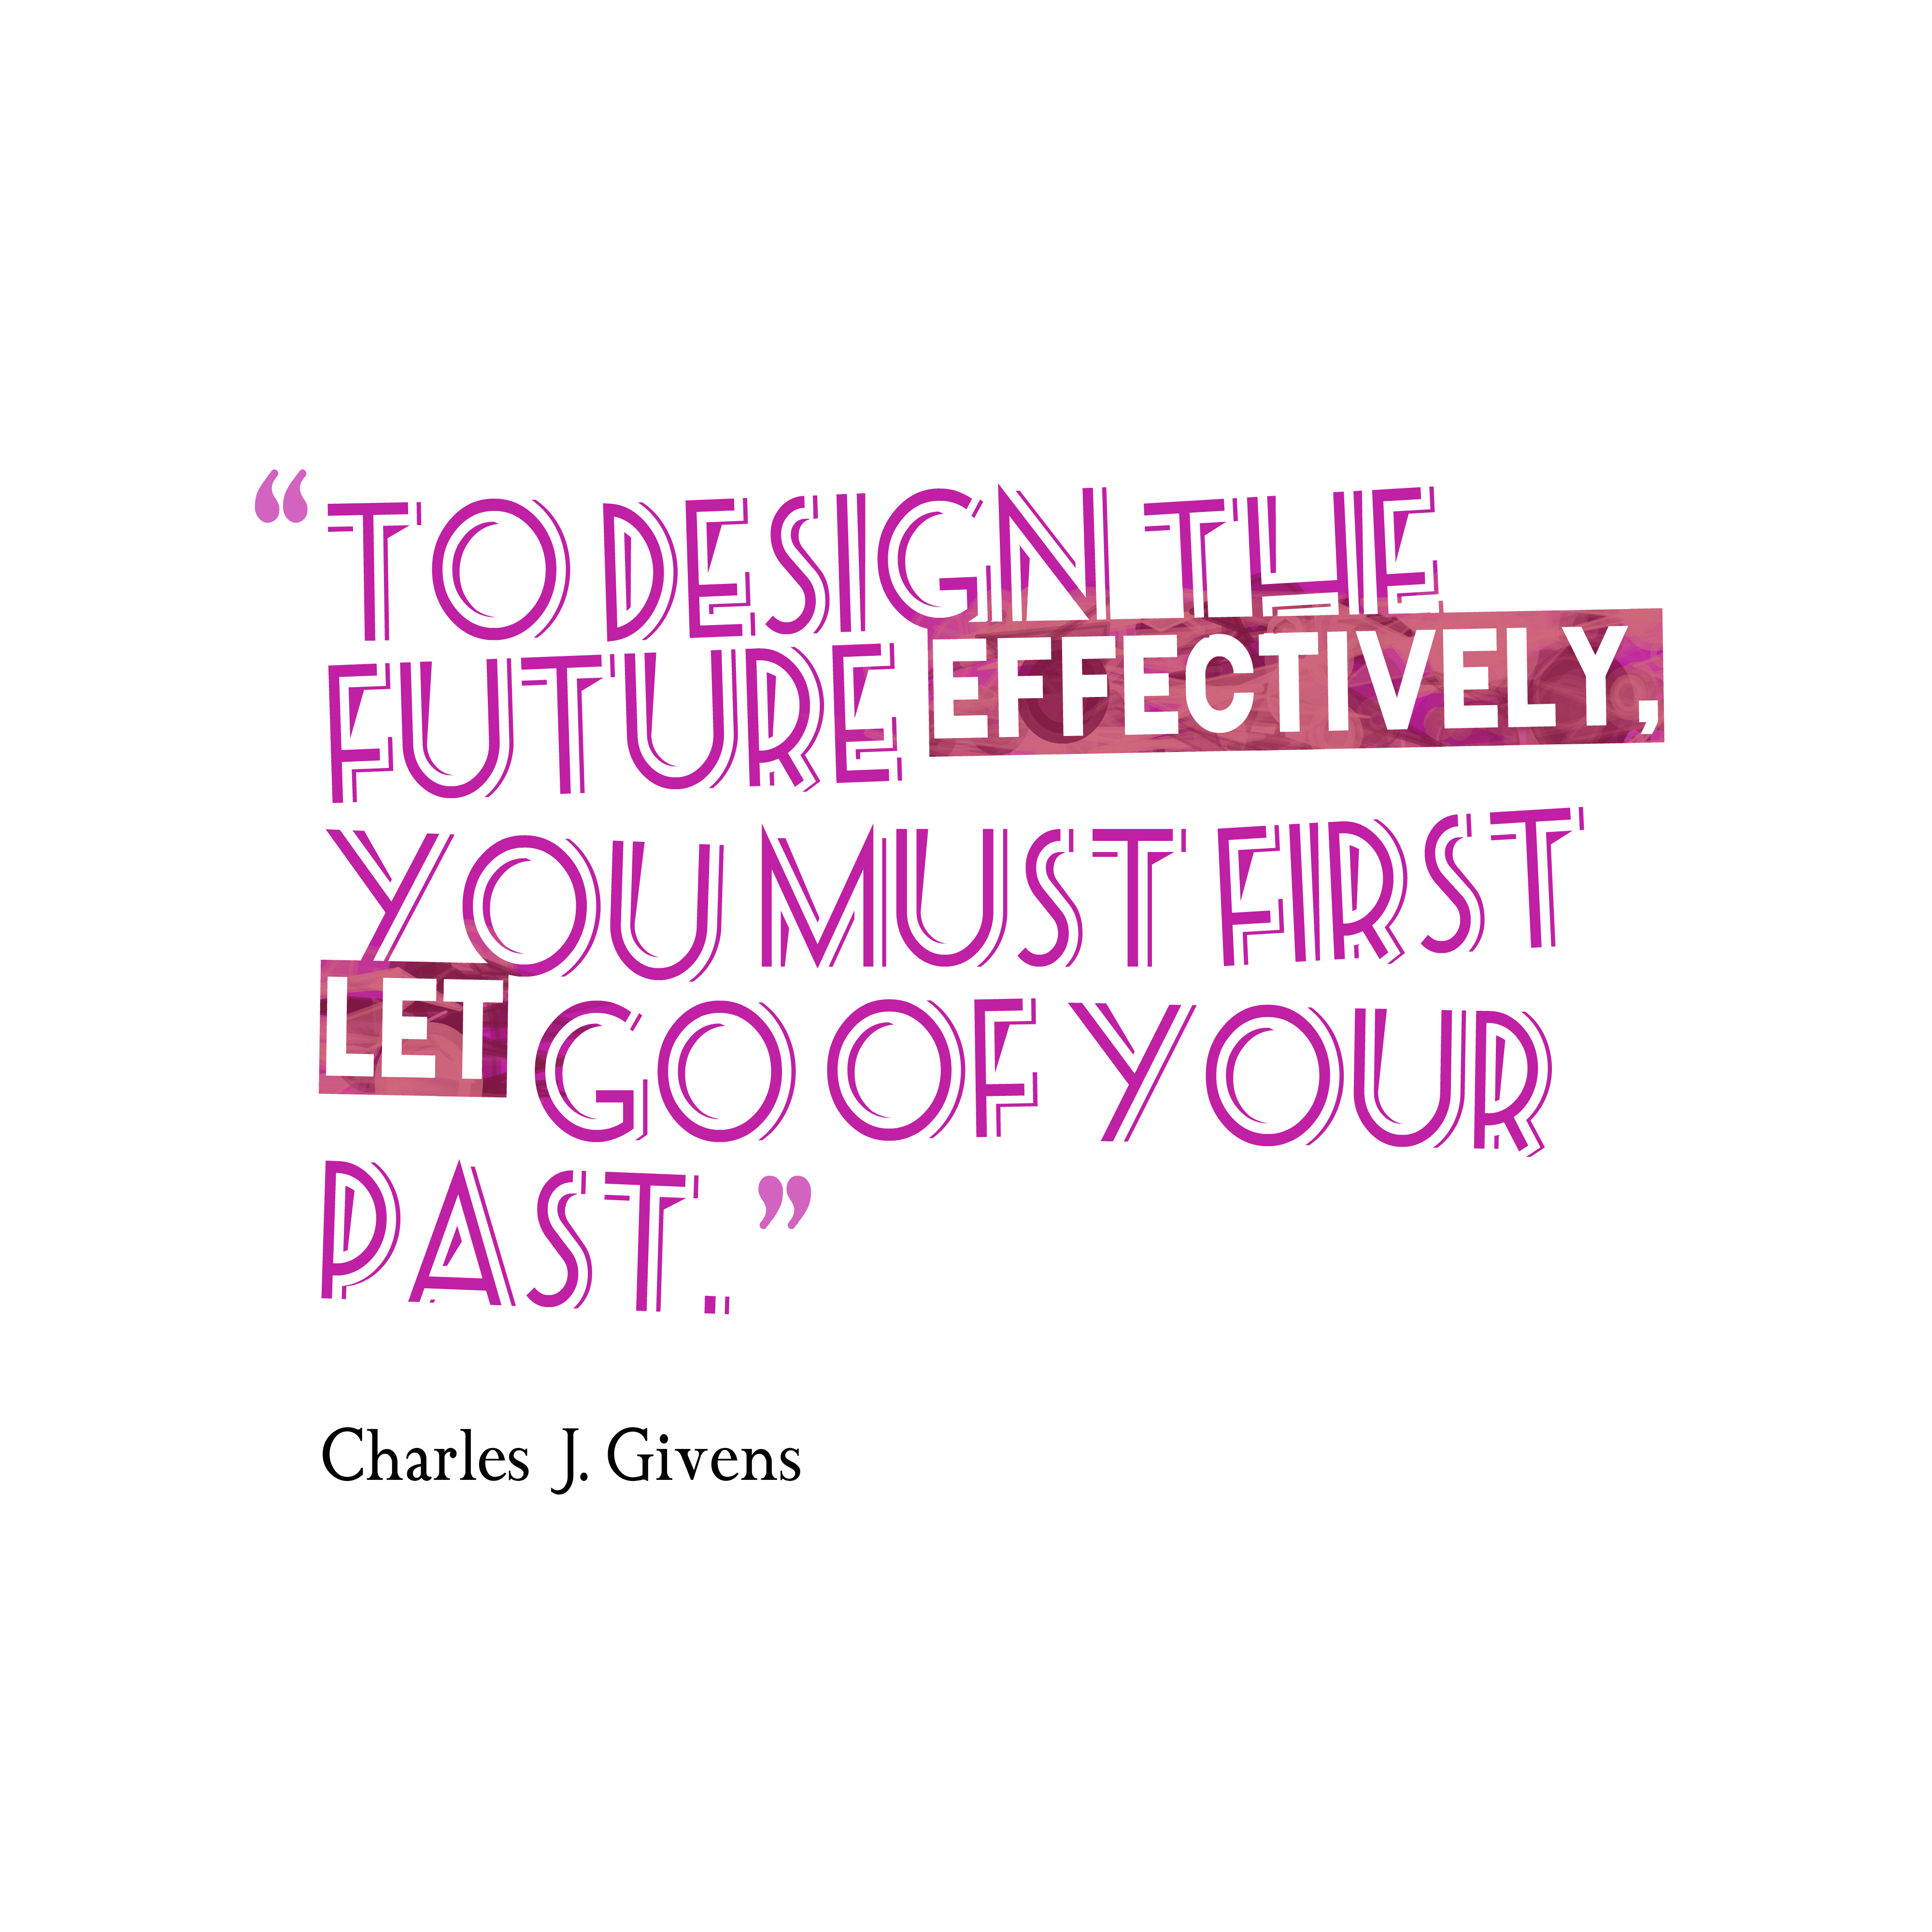 Quotes About Moving On From The Past Download or publish quotesQuotes About Moving On From The Past